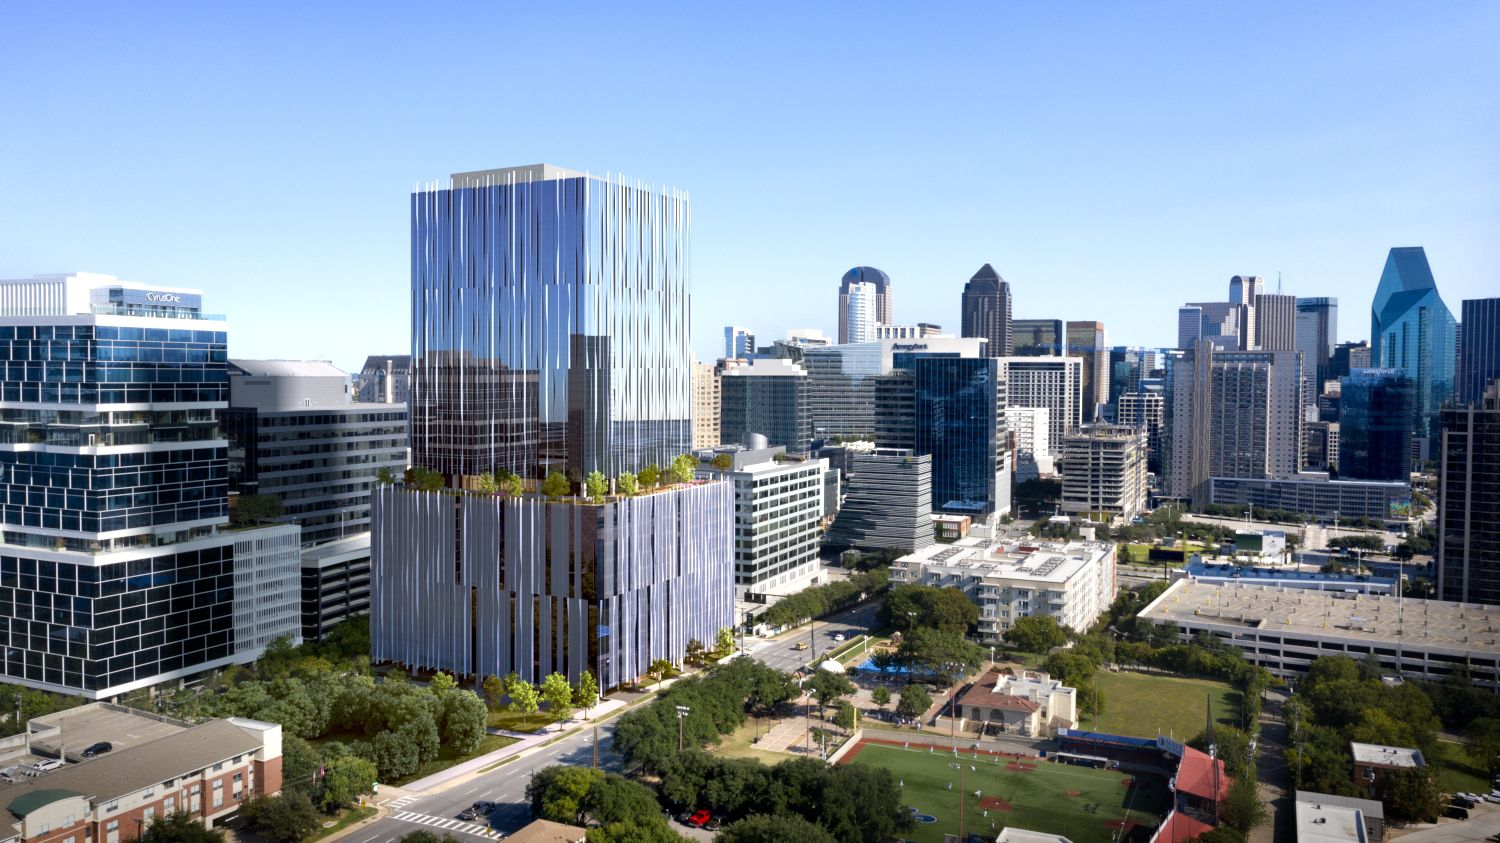 The 27-story Harwood No. 14 office building is the latest project by developer Harwood International.